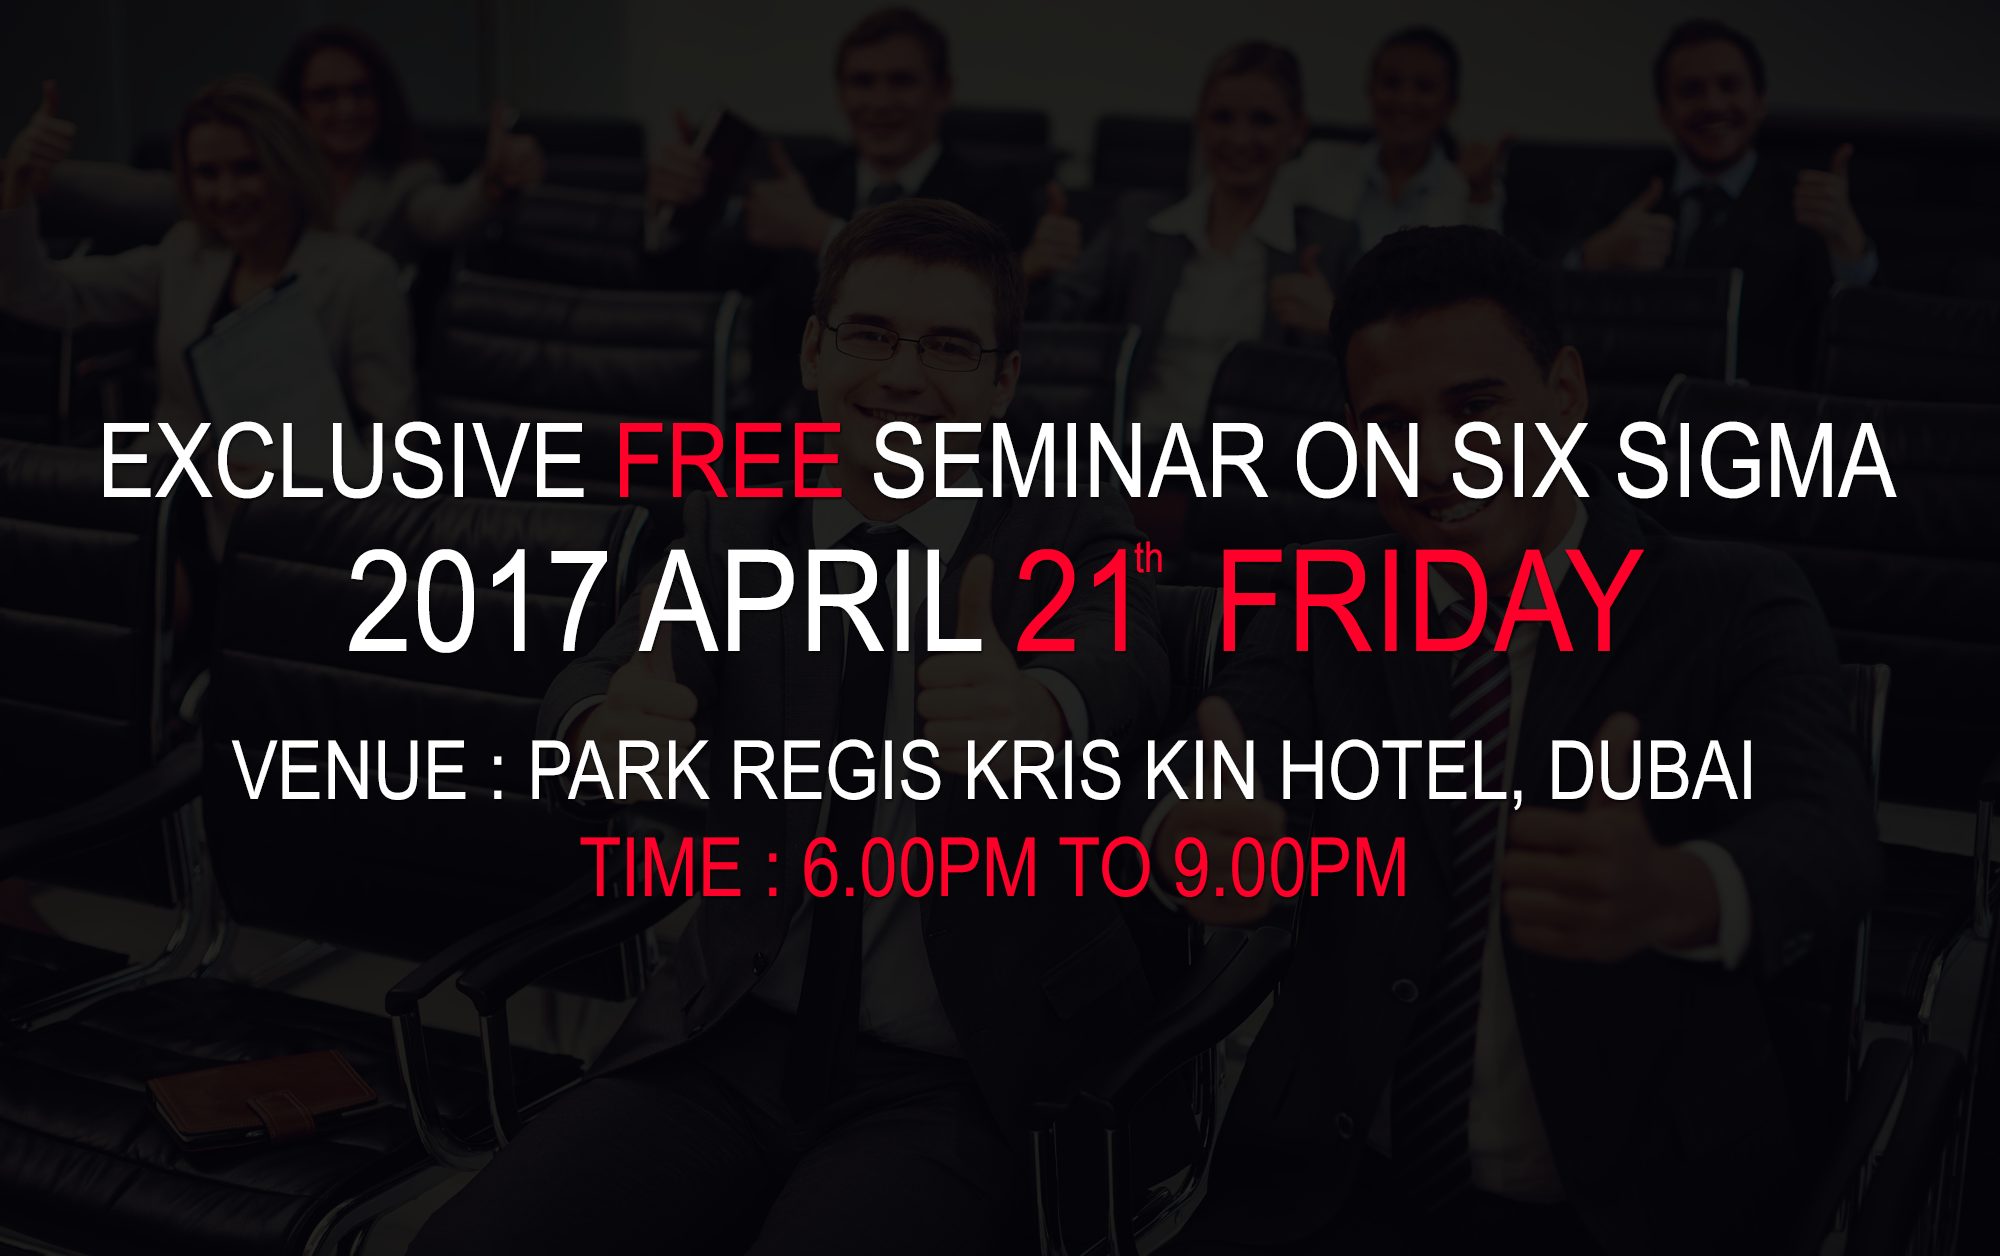 Exclusive free seminar on six sigma on 2017 april 21st friday seminar on six sigma certification and training program uae xflitez Image collections